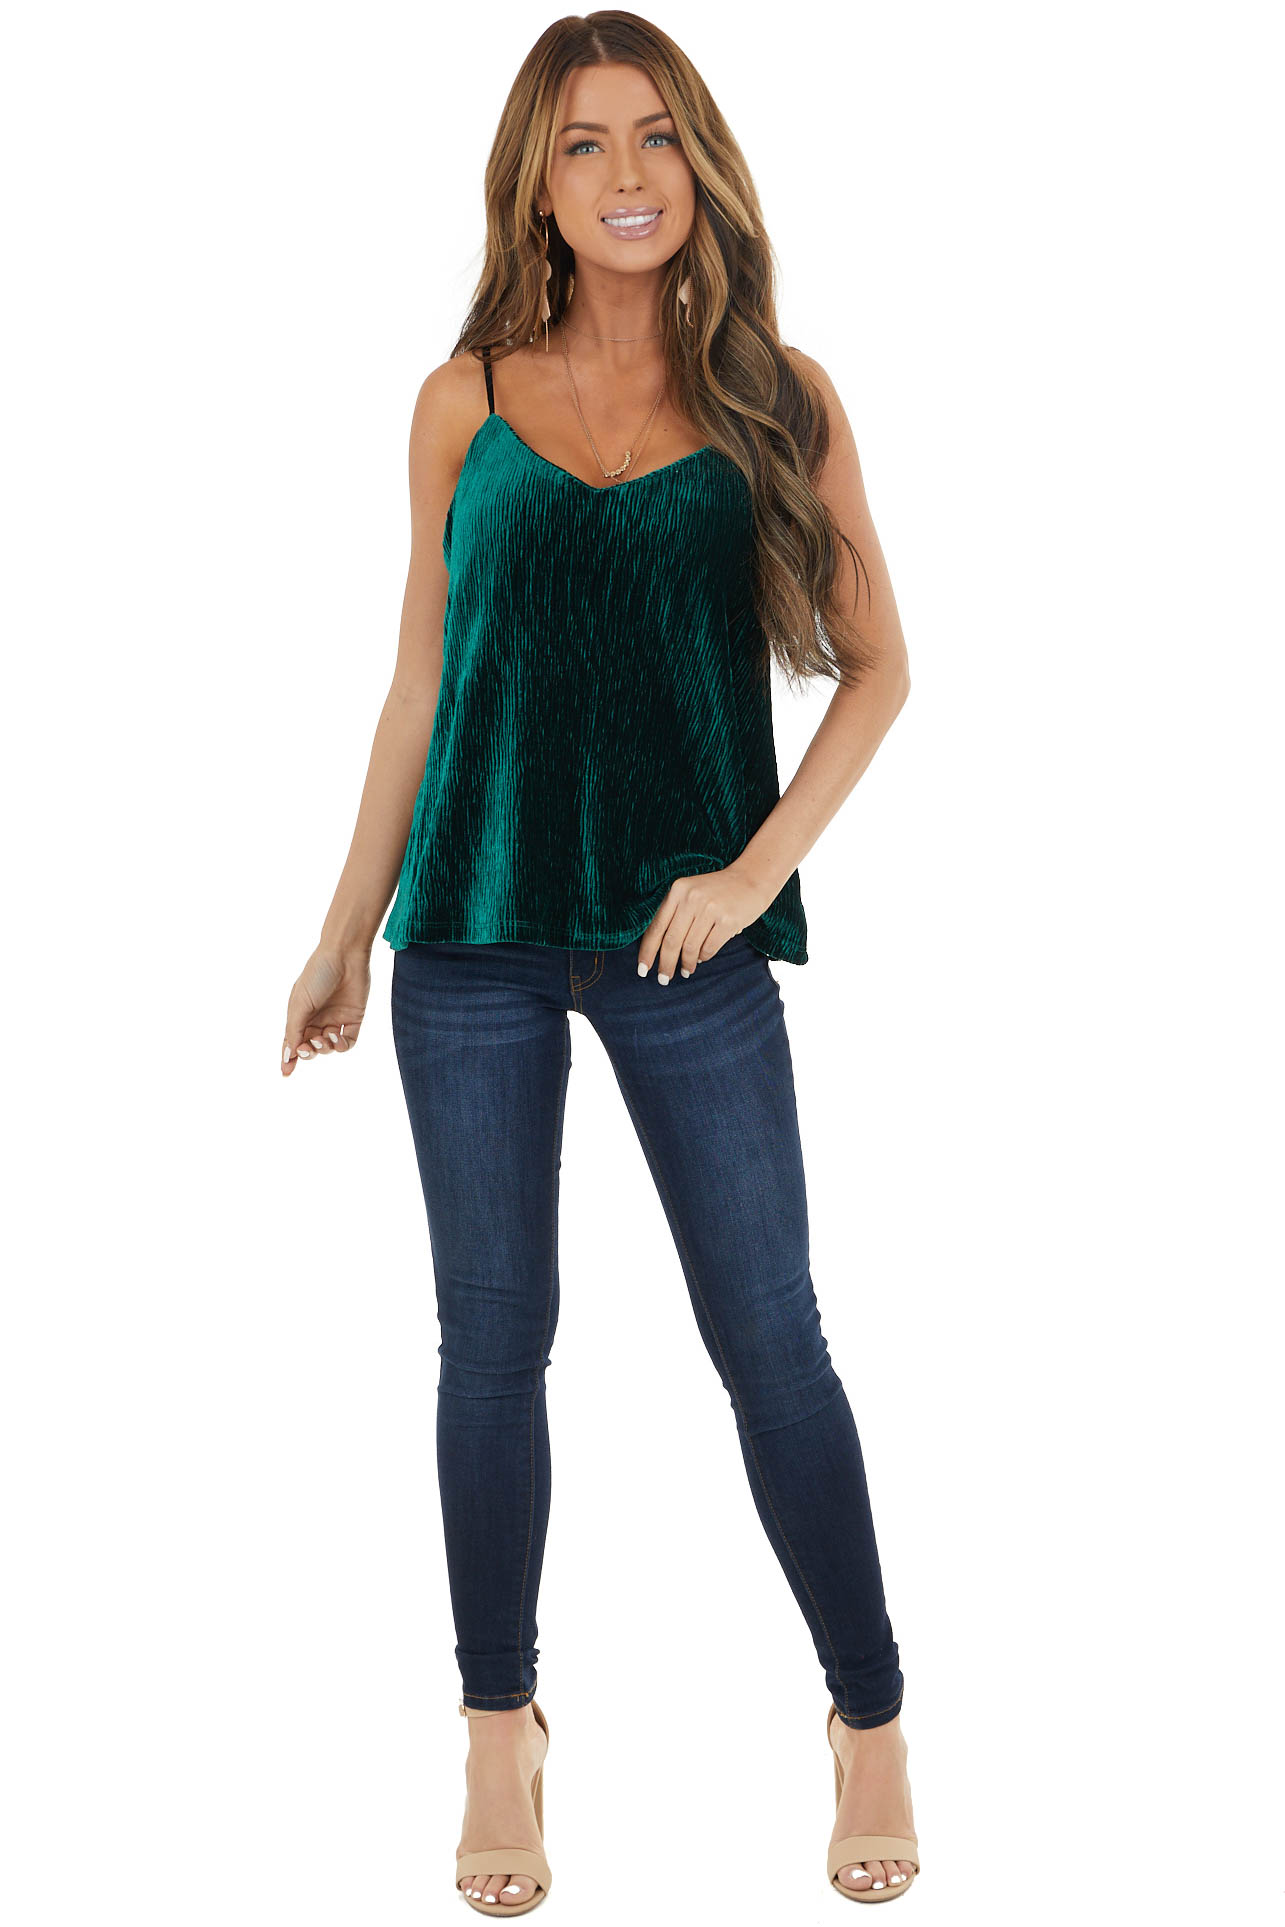 Forest Green Ribbed Velvet Camisole with Adjustable Straps